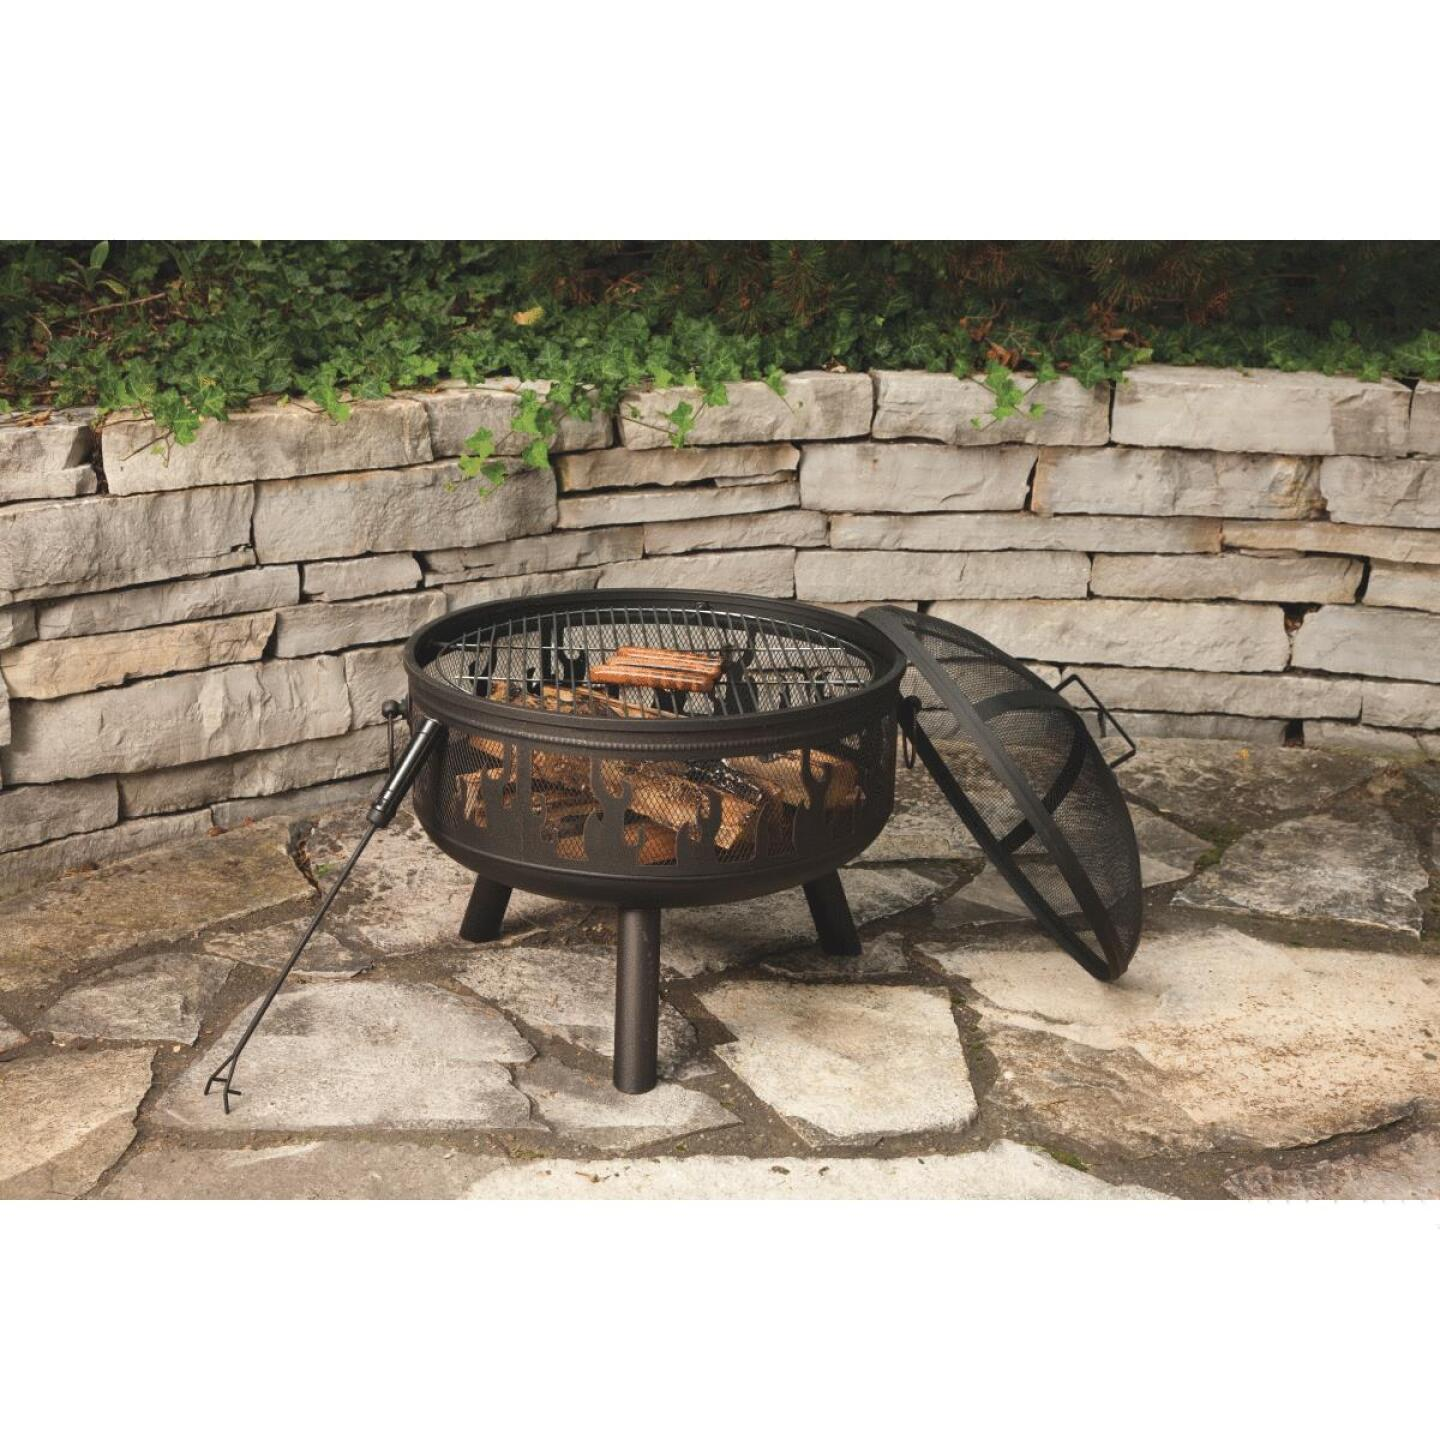 Outdoor Expressions 24 In. Antique Bronze Round Steel Fire Pit Image 5